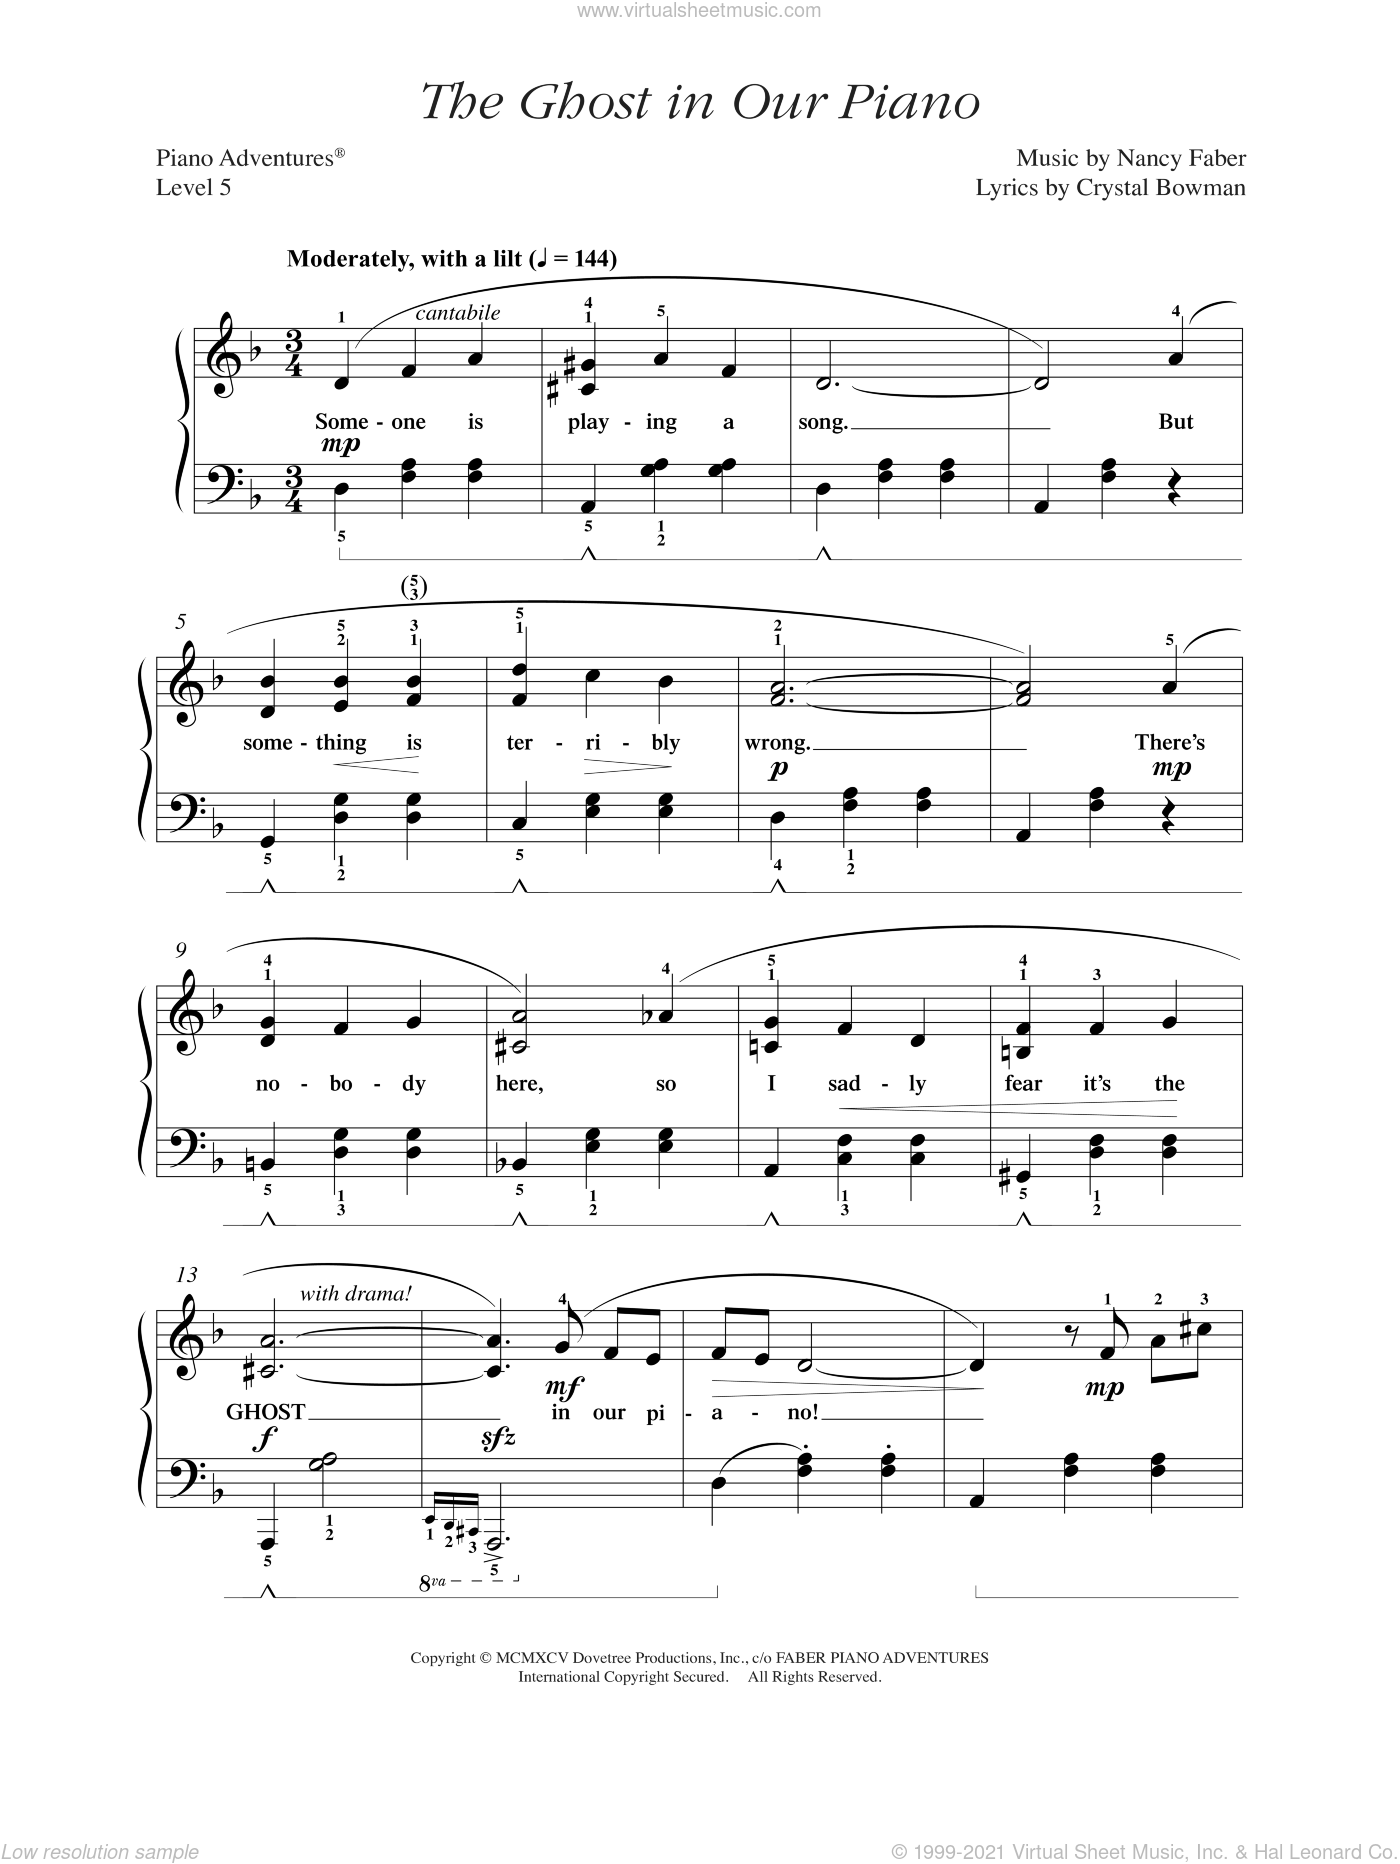 The Ghost in Our Piano sheet music for piano solo by Nancy Faber and Crystal Bowman, intermediate/advanced skill level